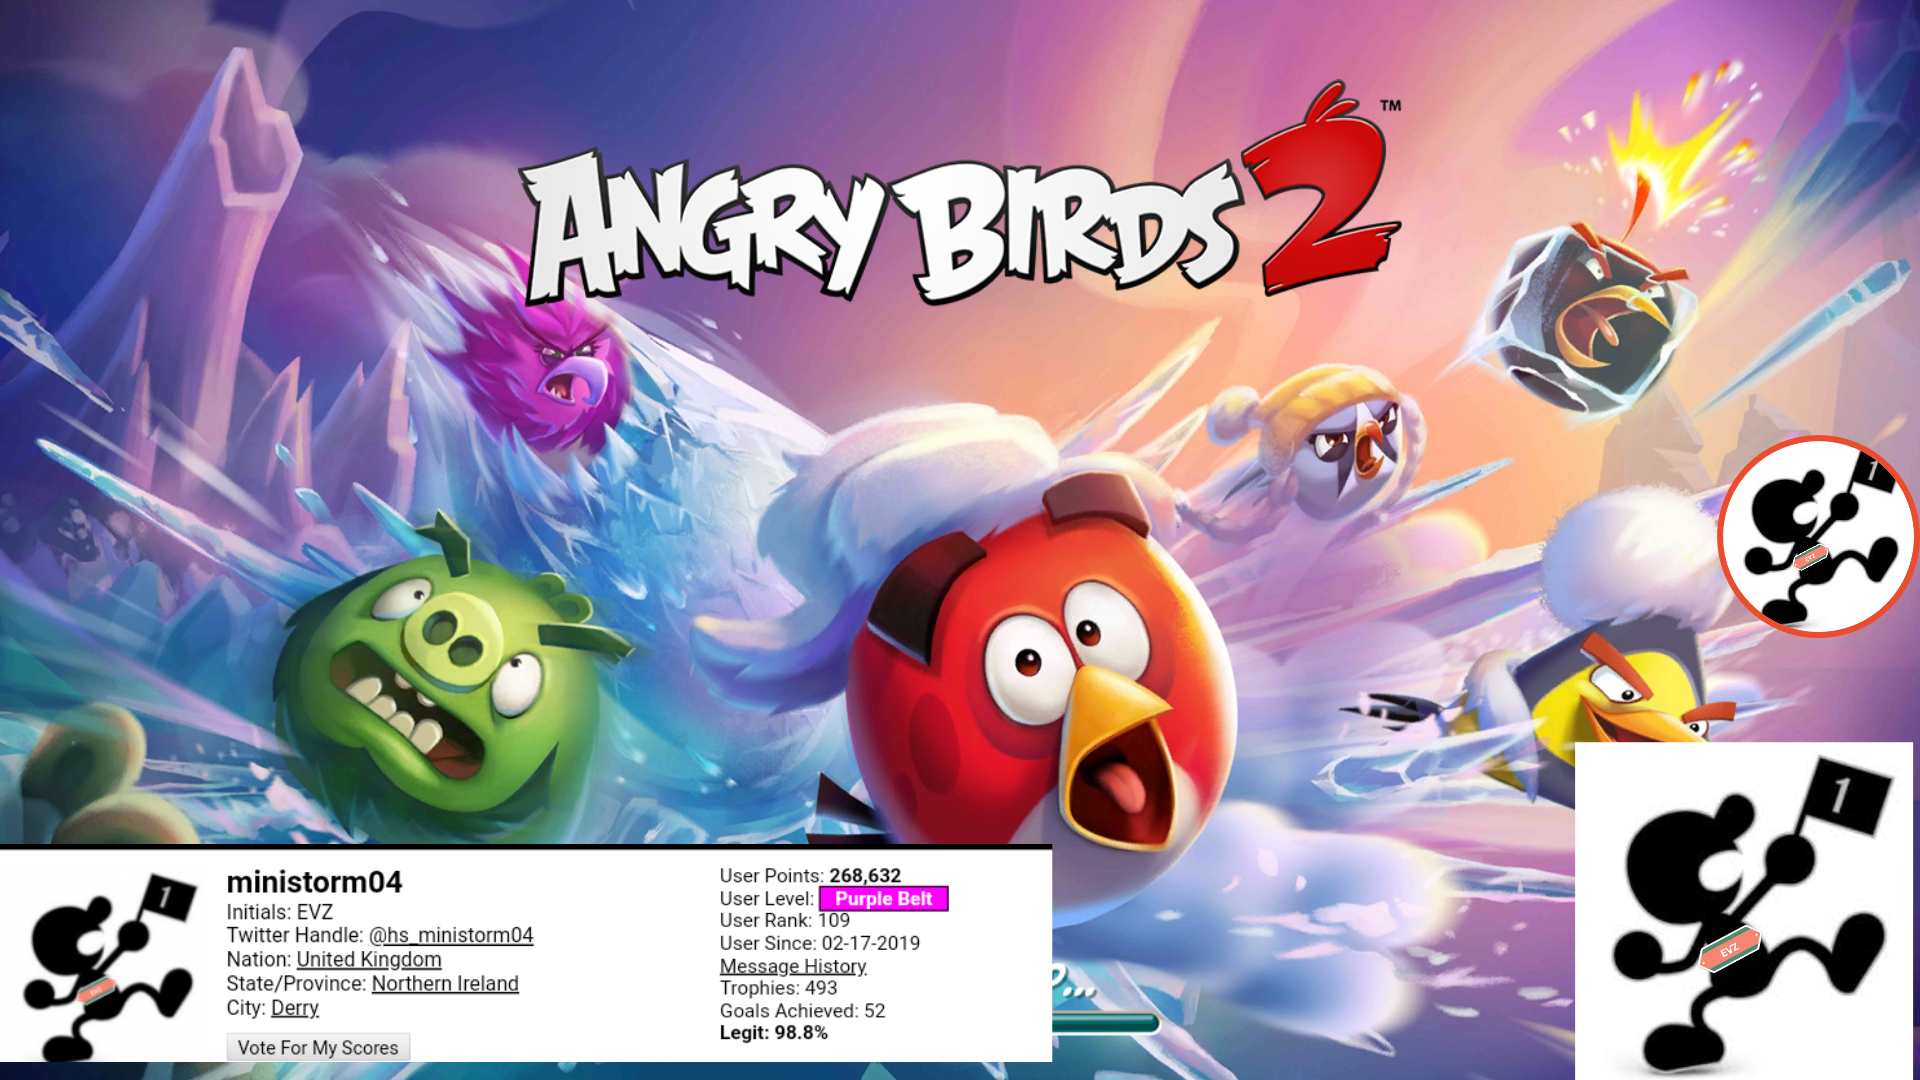 ministorm04: Angry Birds 2: Level 3 (Android) 176,771 points on 2019-07-08 07:29:37